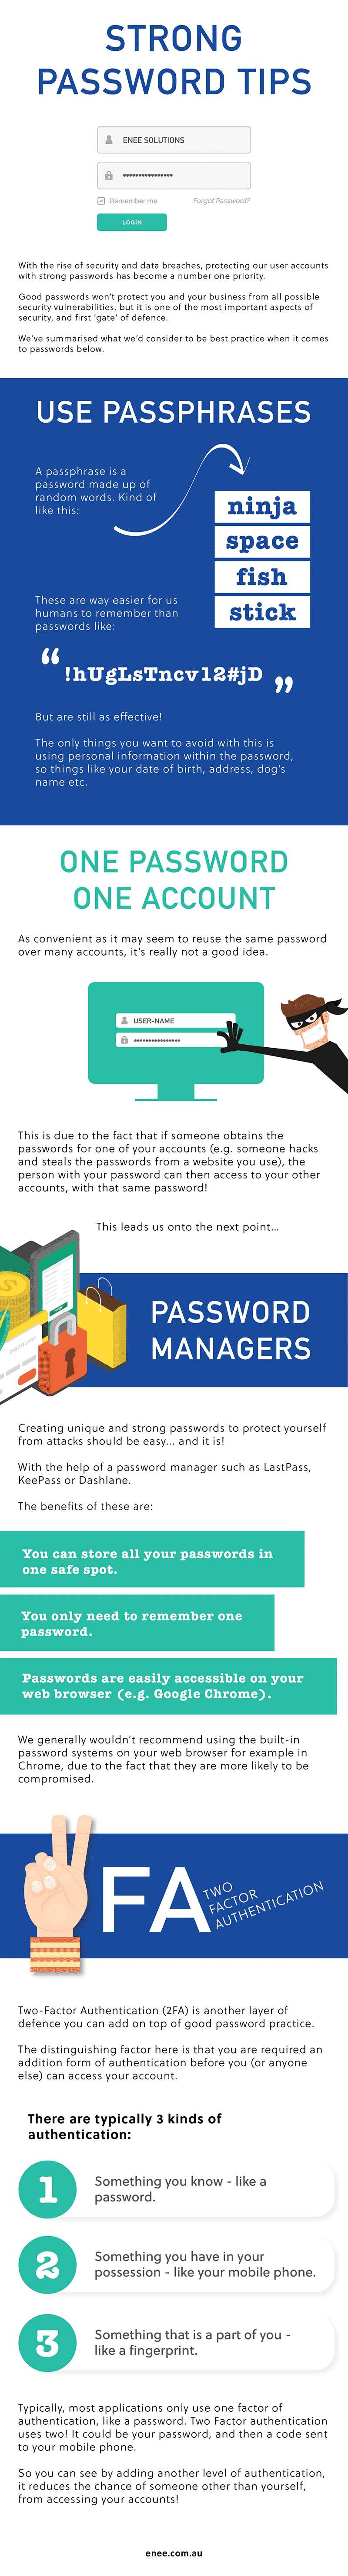 tips on how to create a strong password